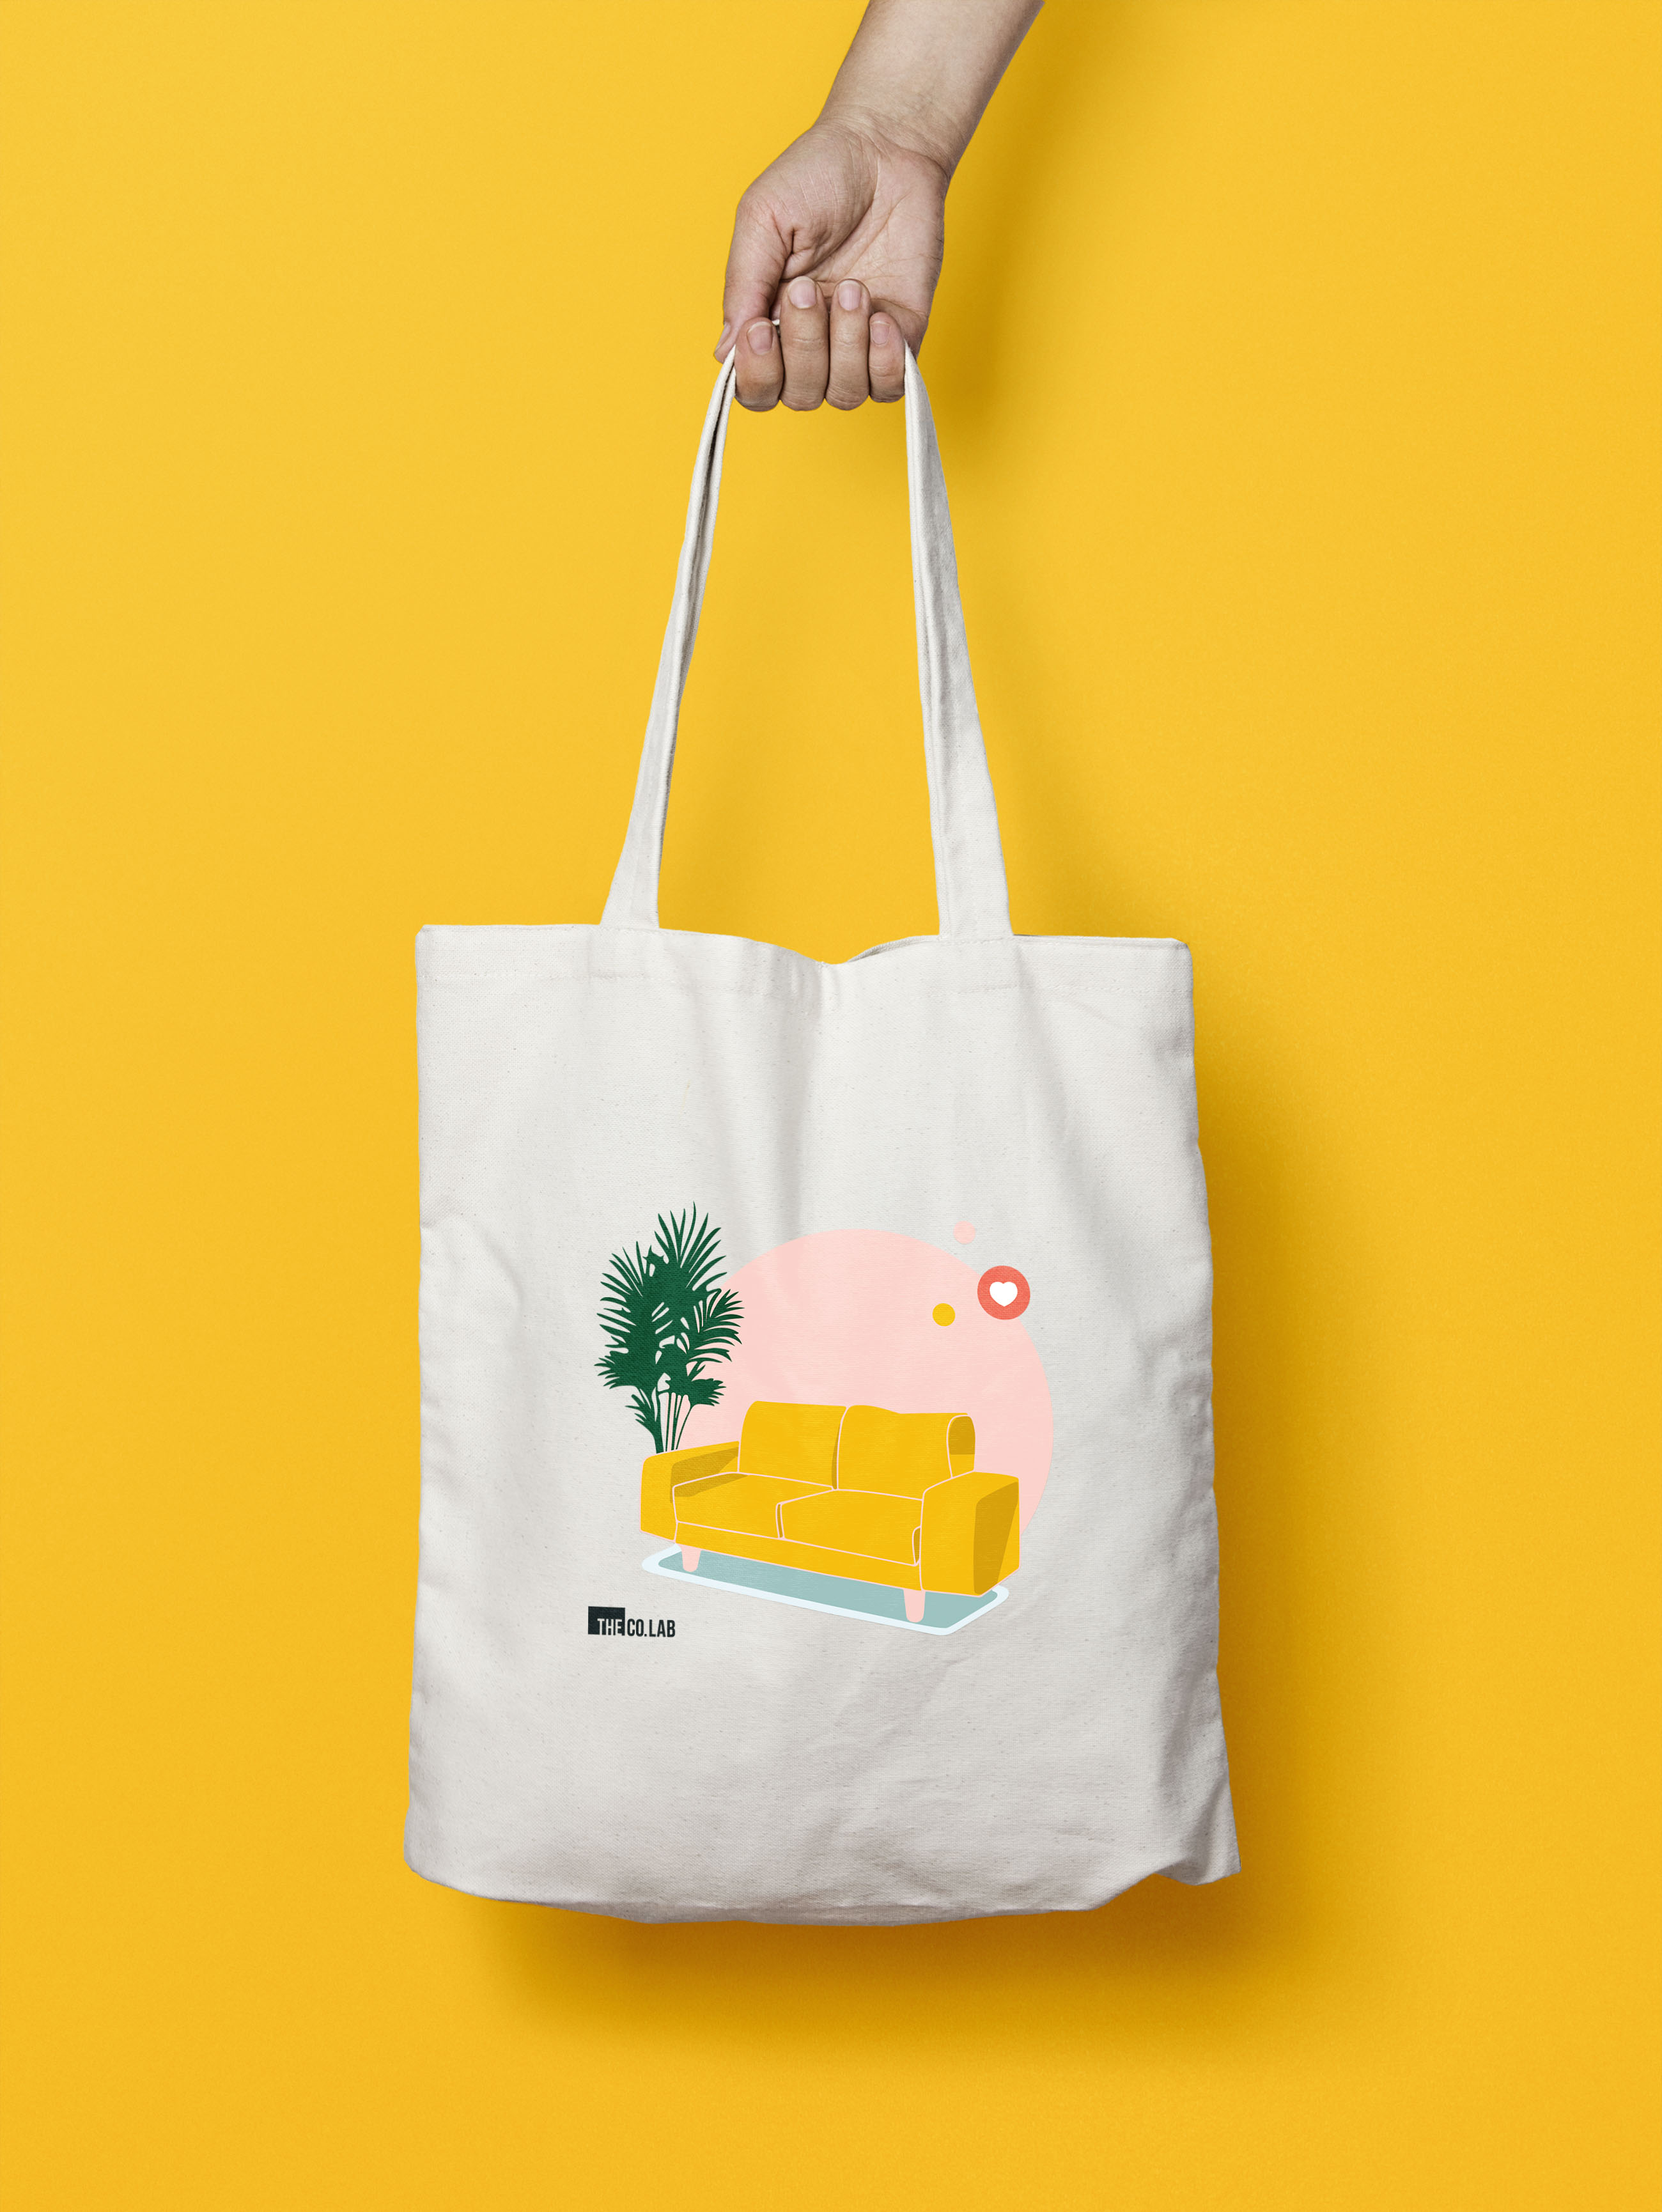 We felt there was no better design for our signature tote than our famous Yellow Couch. This piece of furniture laid the foundation of our story and it brings us great joy to see it carried around by our community members in this versatile tote.